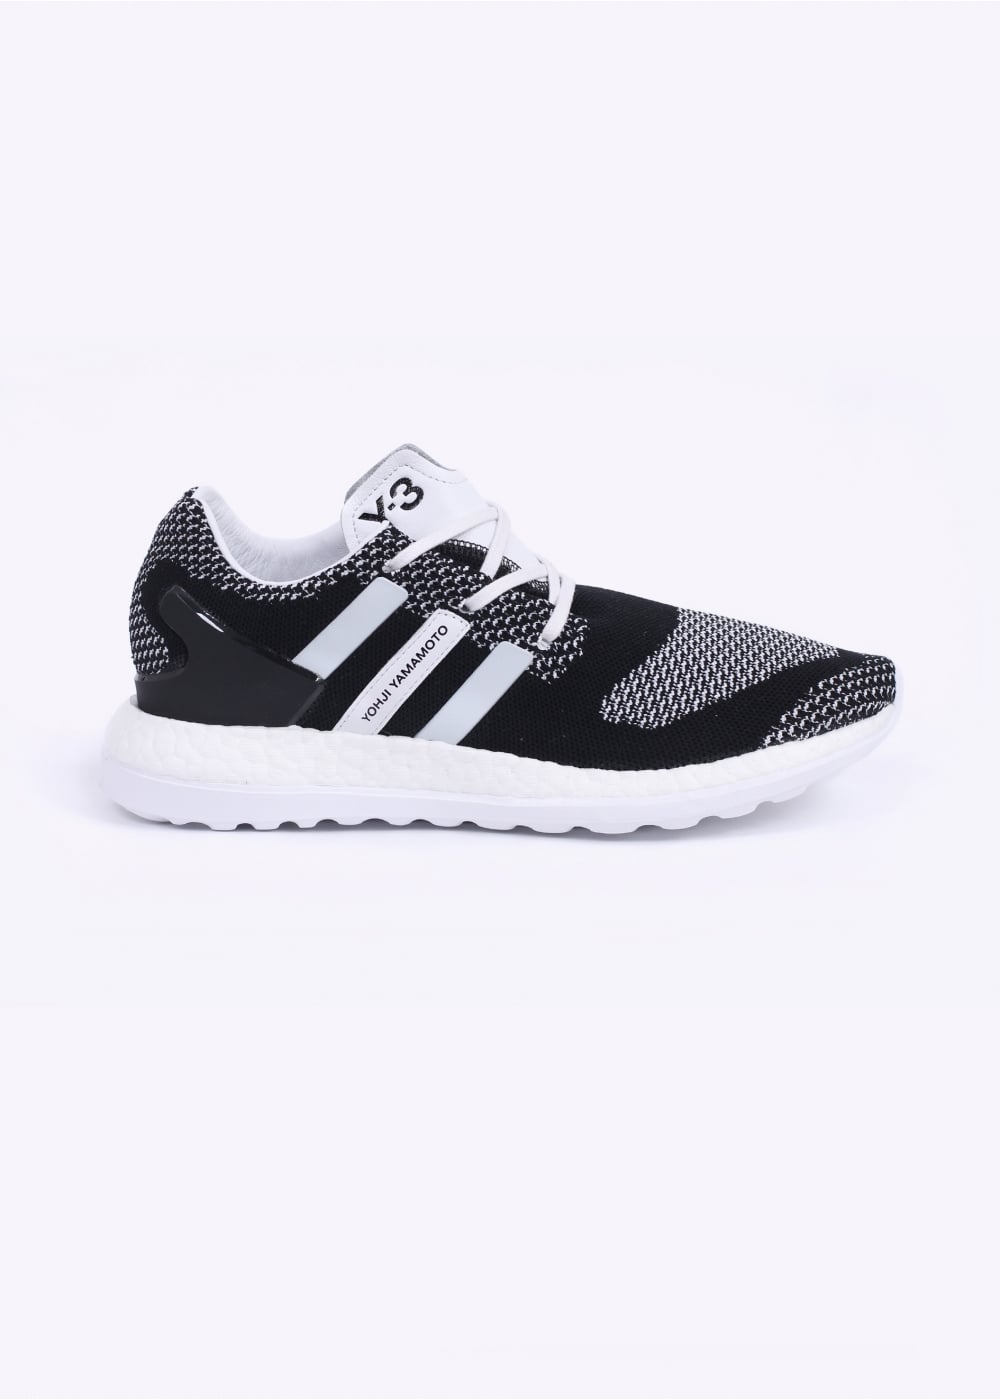 3fc39db9c8c3 adidas Y-3 Pure Boost ZG Knit Trainers - Black   White